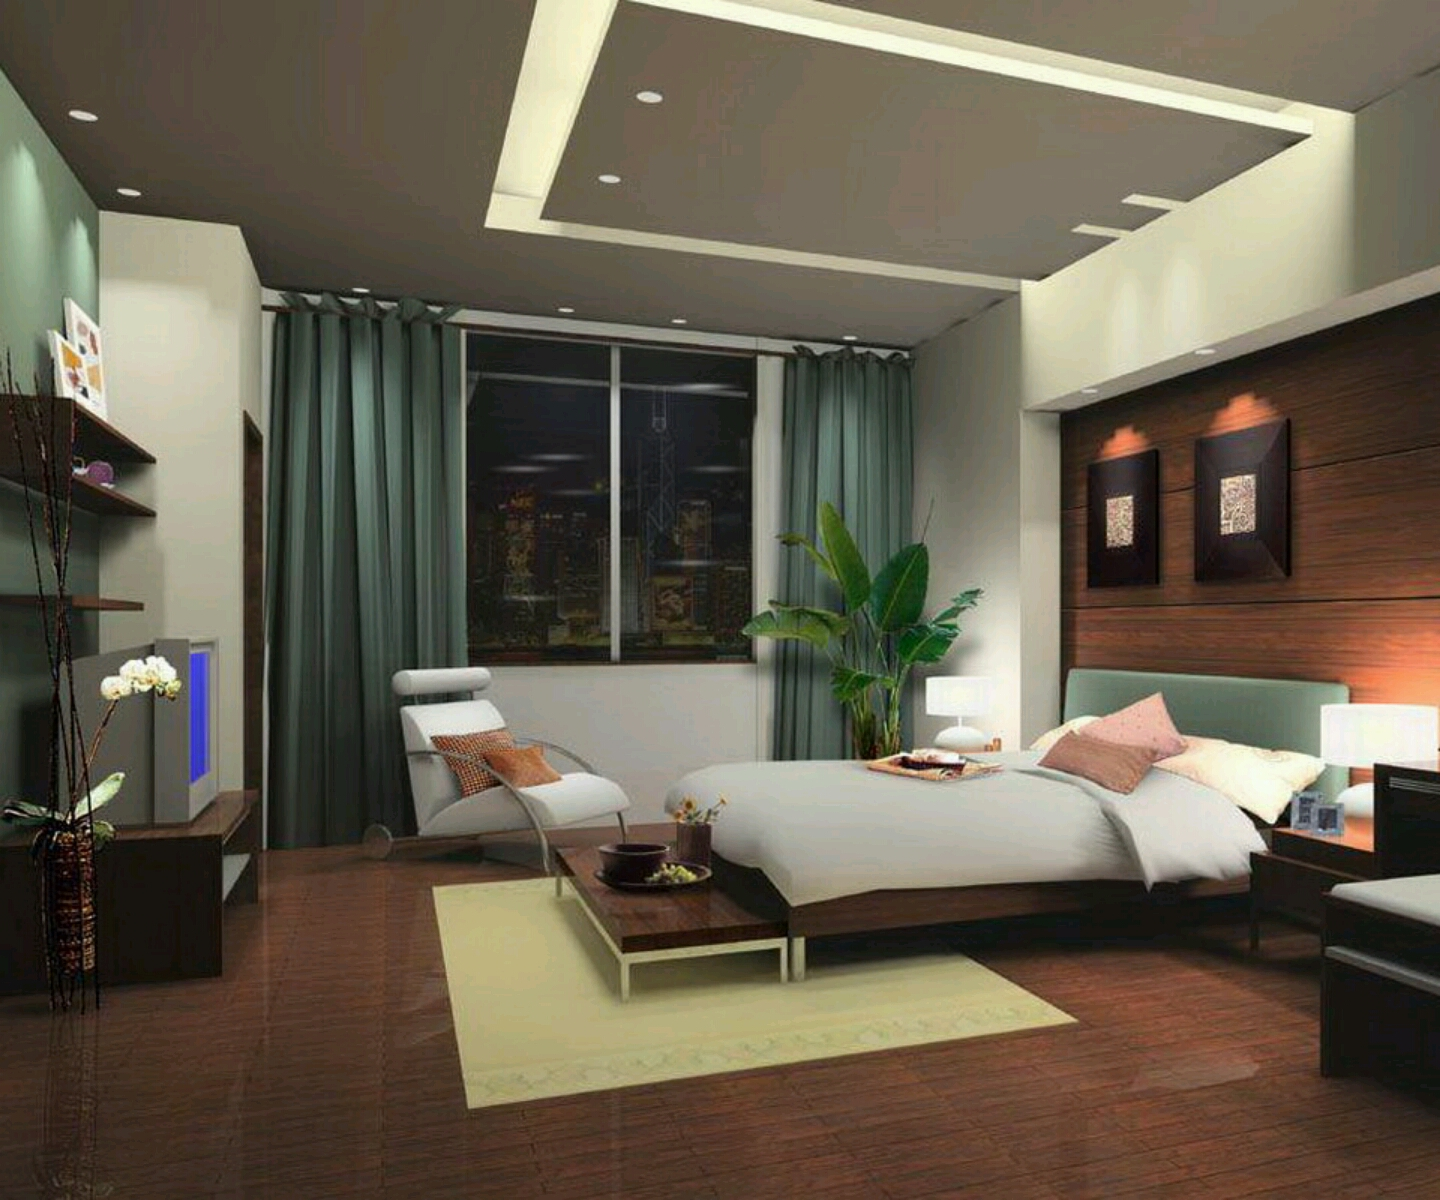 New home designs latest modern bedrooms designs best ideas for New bed decoration